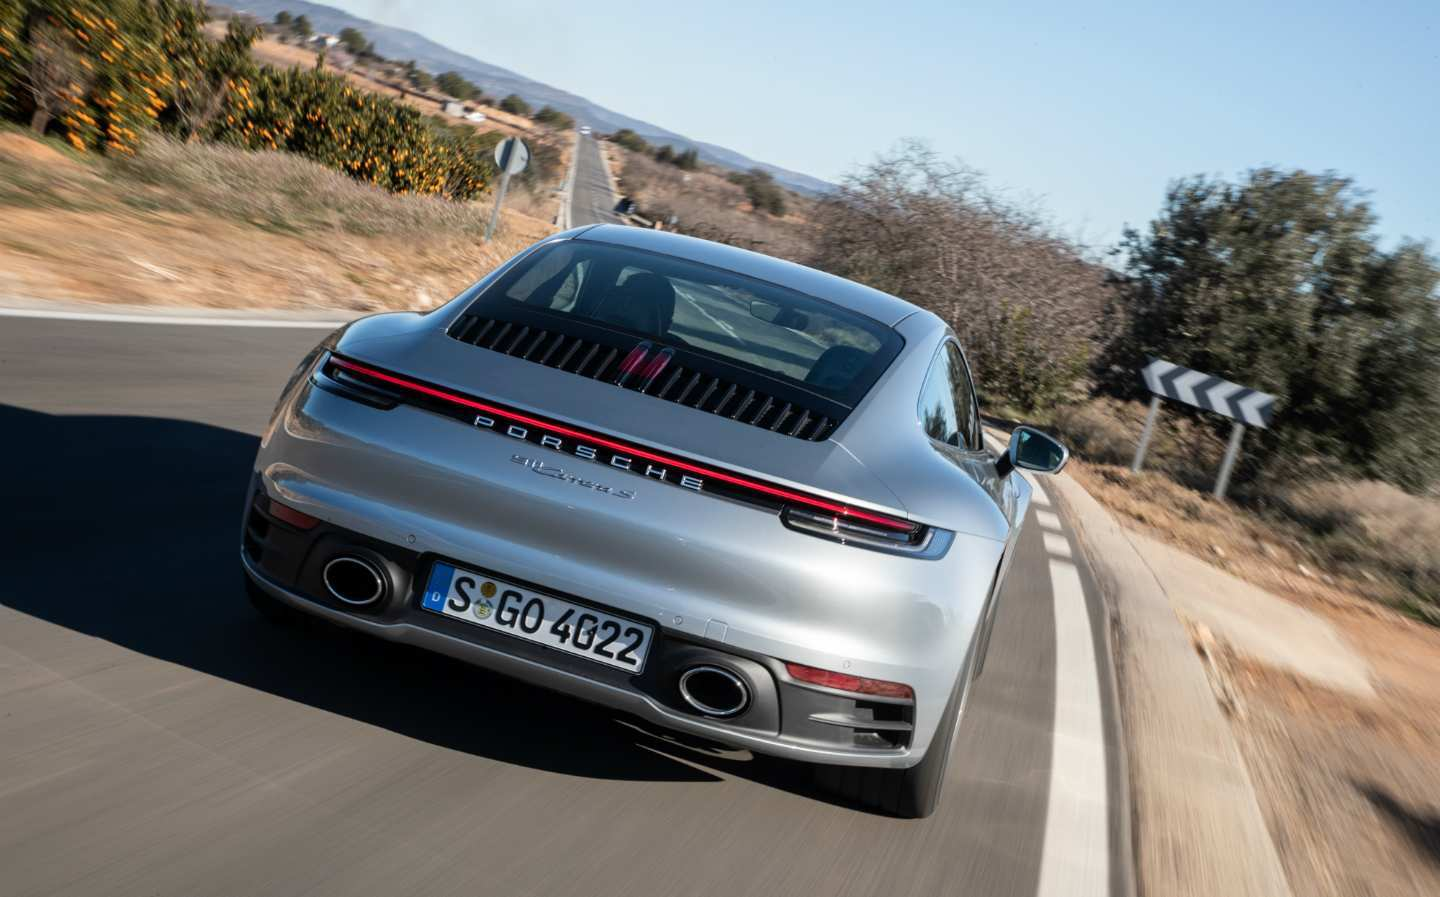 51 All New 2019 Porsche 911 Carrera Price Design And Review